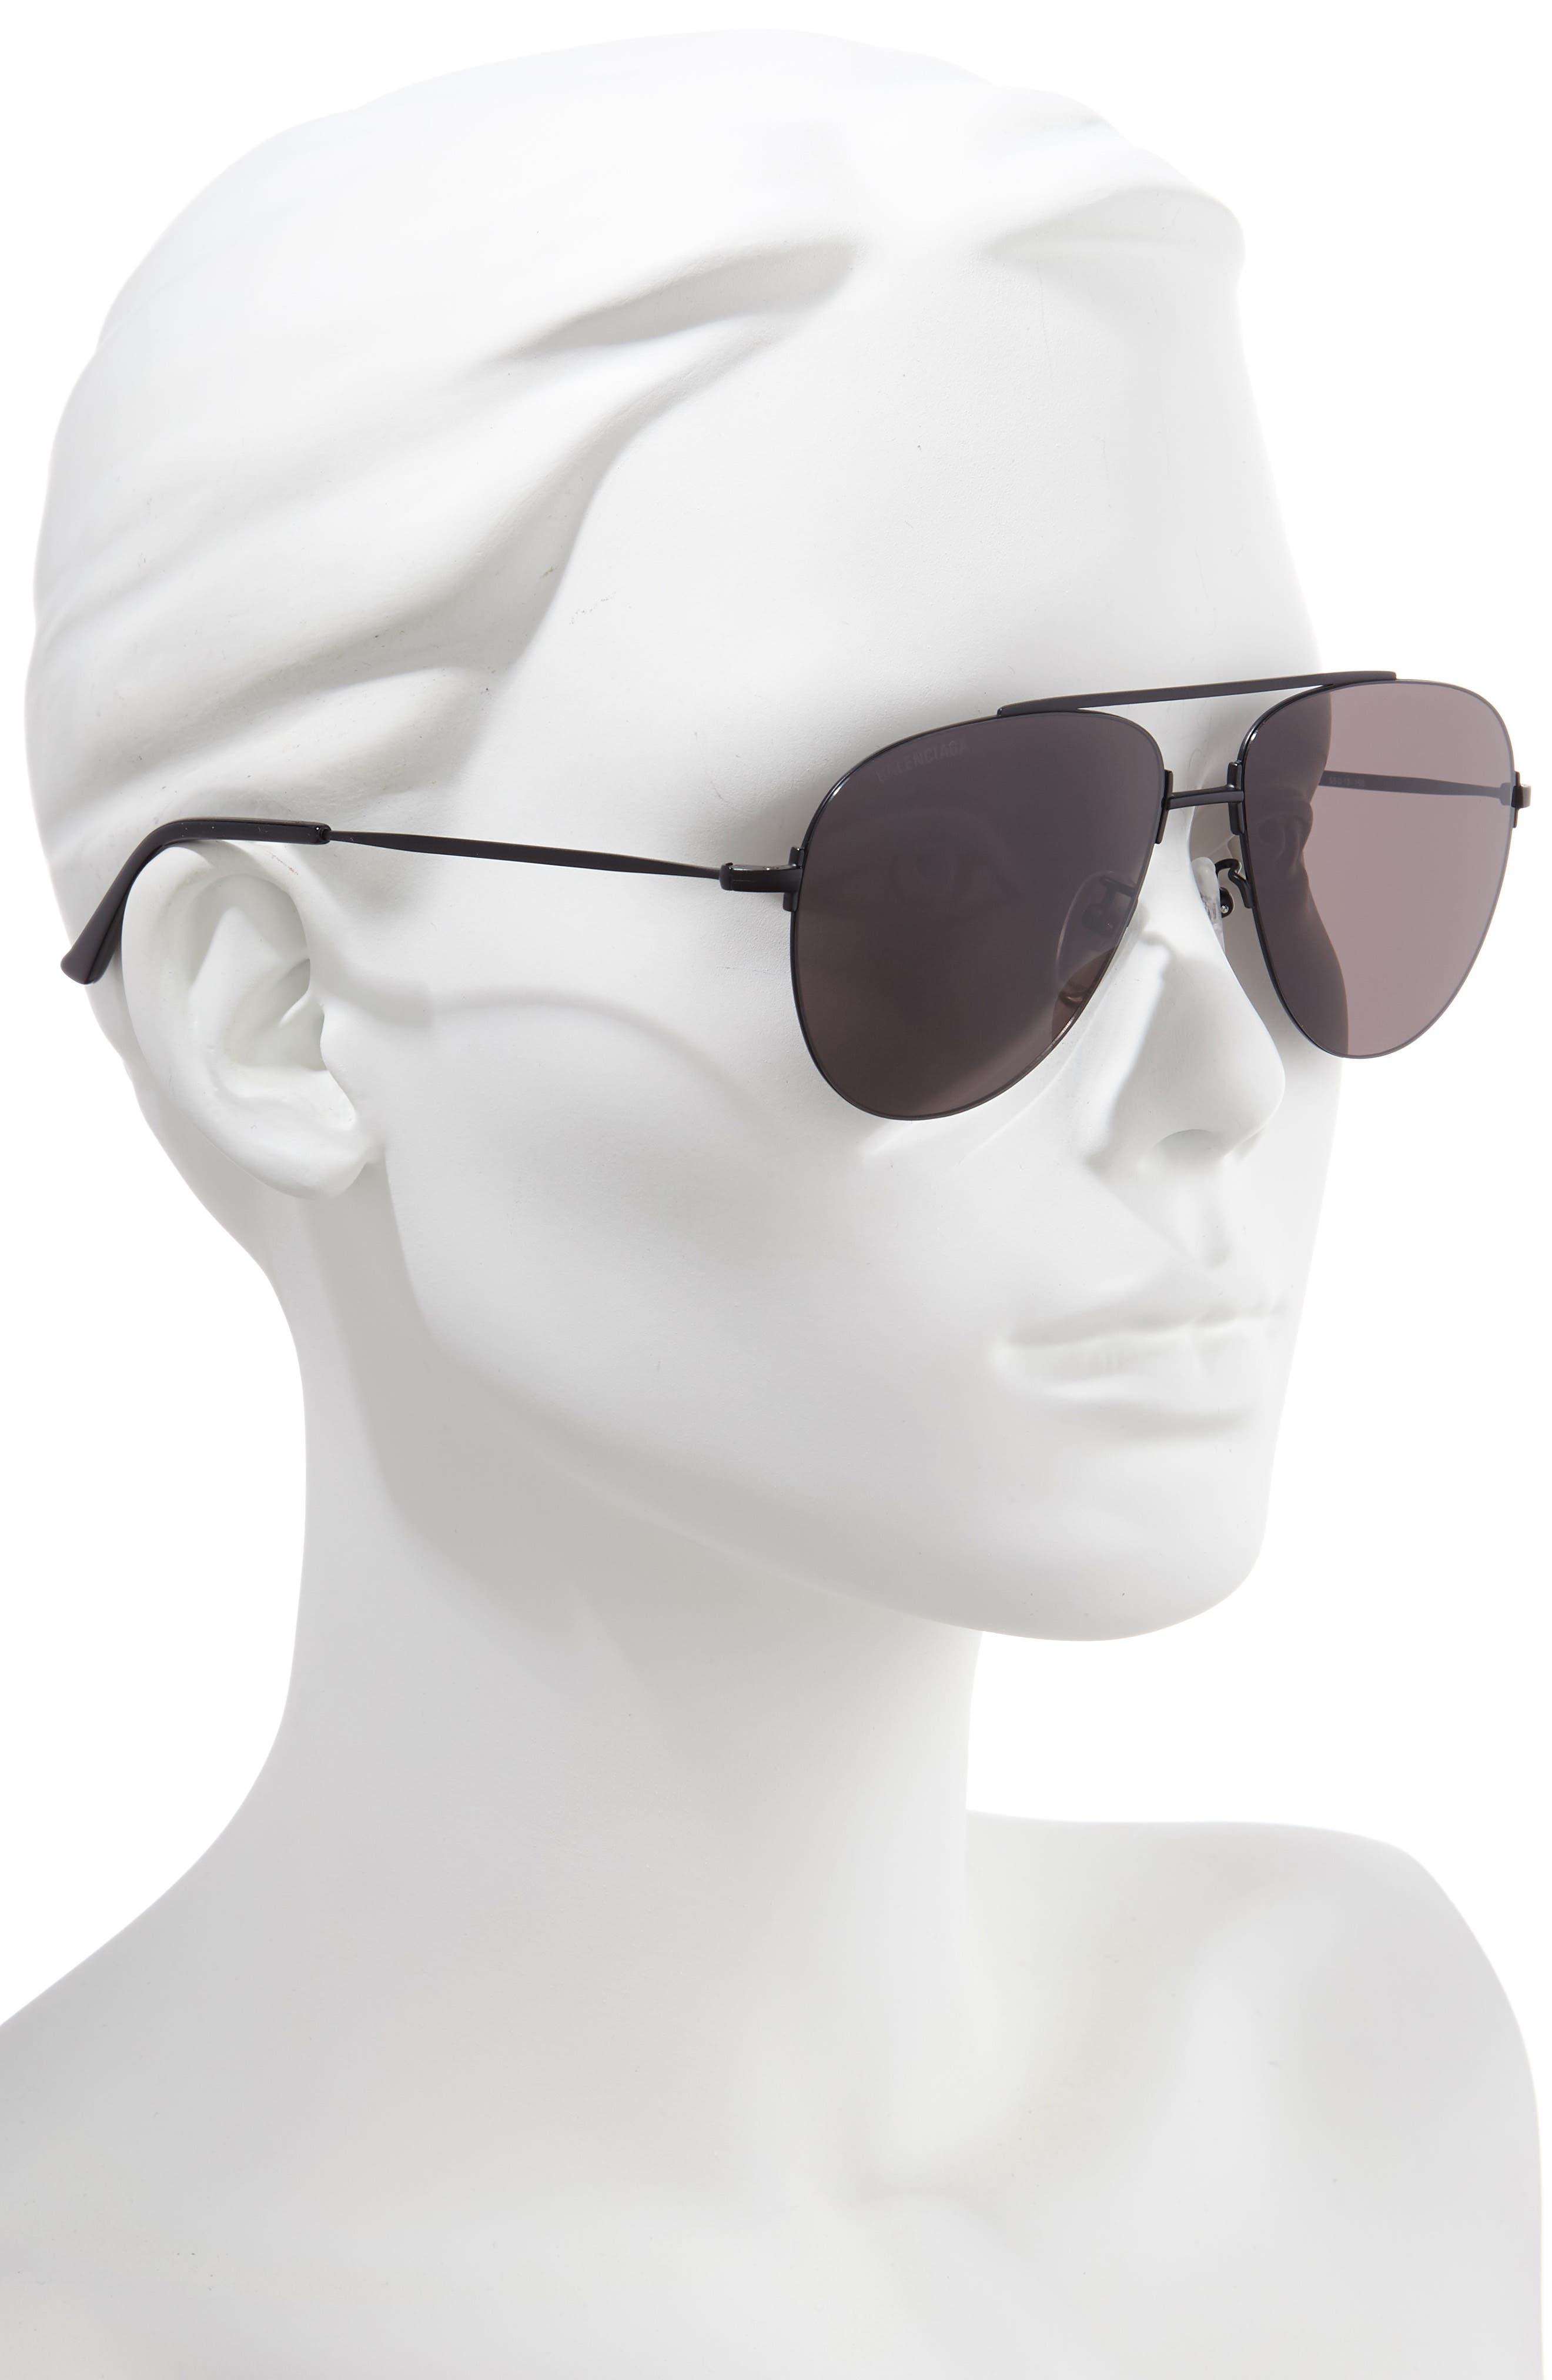 BALENCIAGA, 59mm Aviator Sunglasses, Alternate thumbnail 2, color, SEMI-MATTE BLACK/ GREY